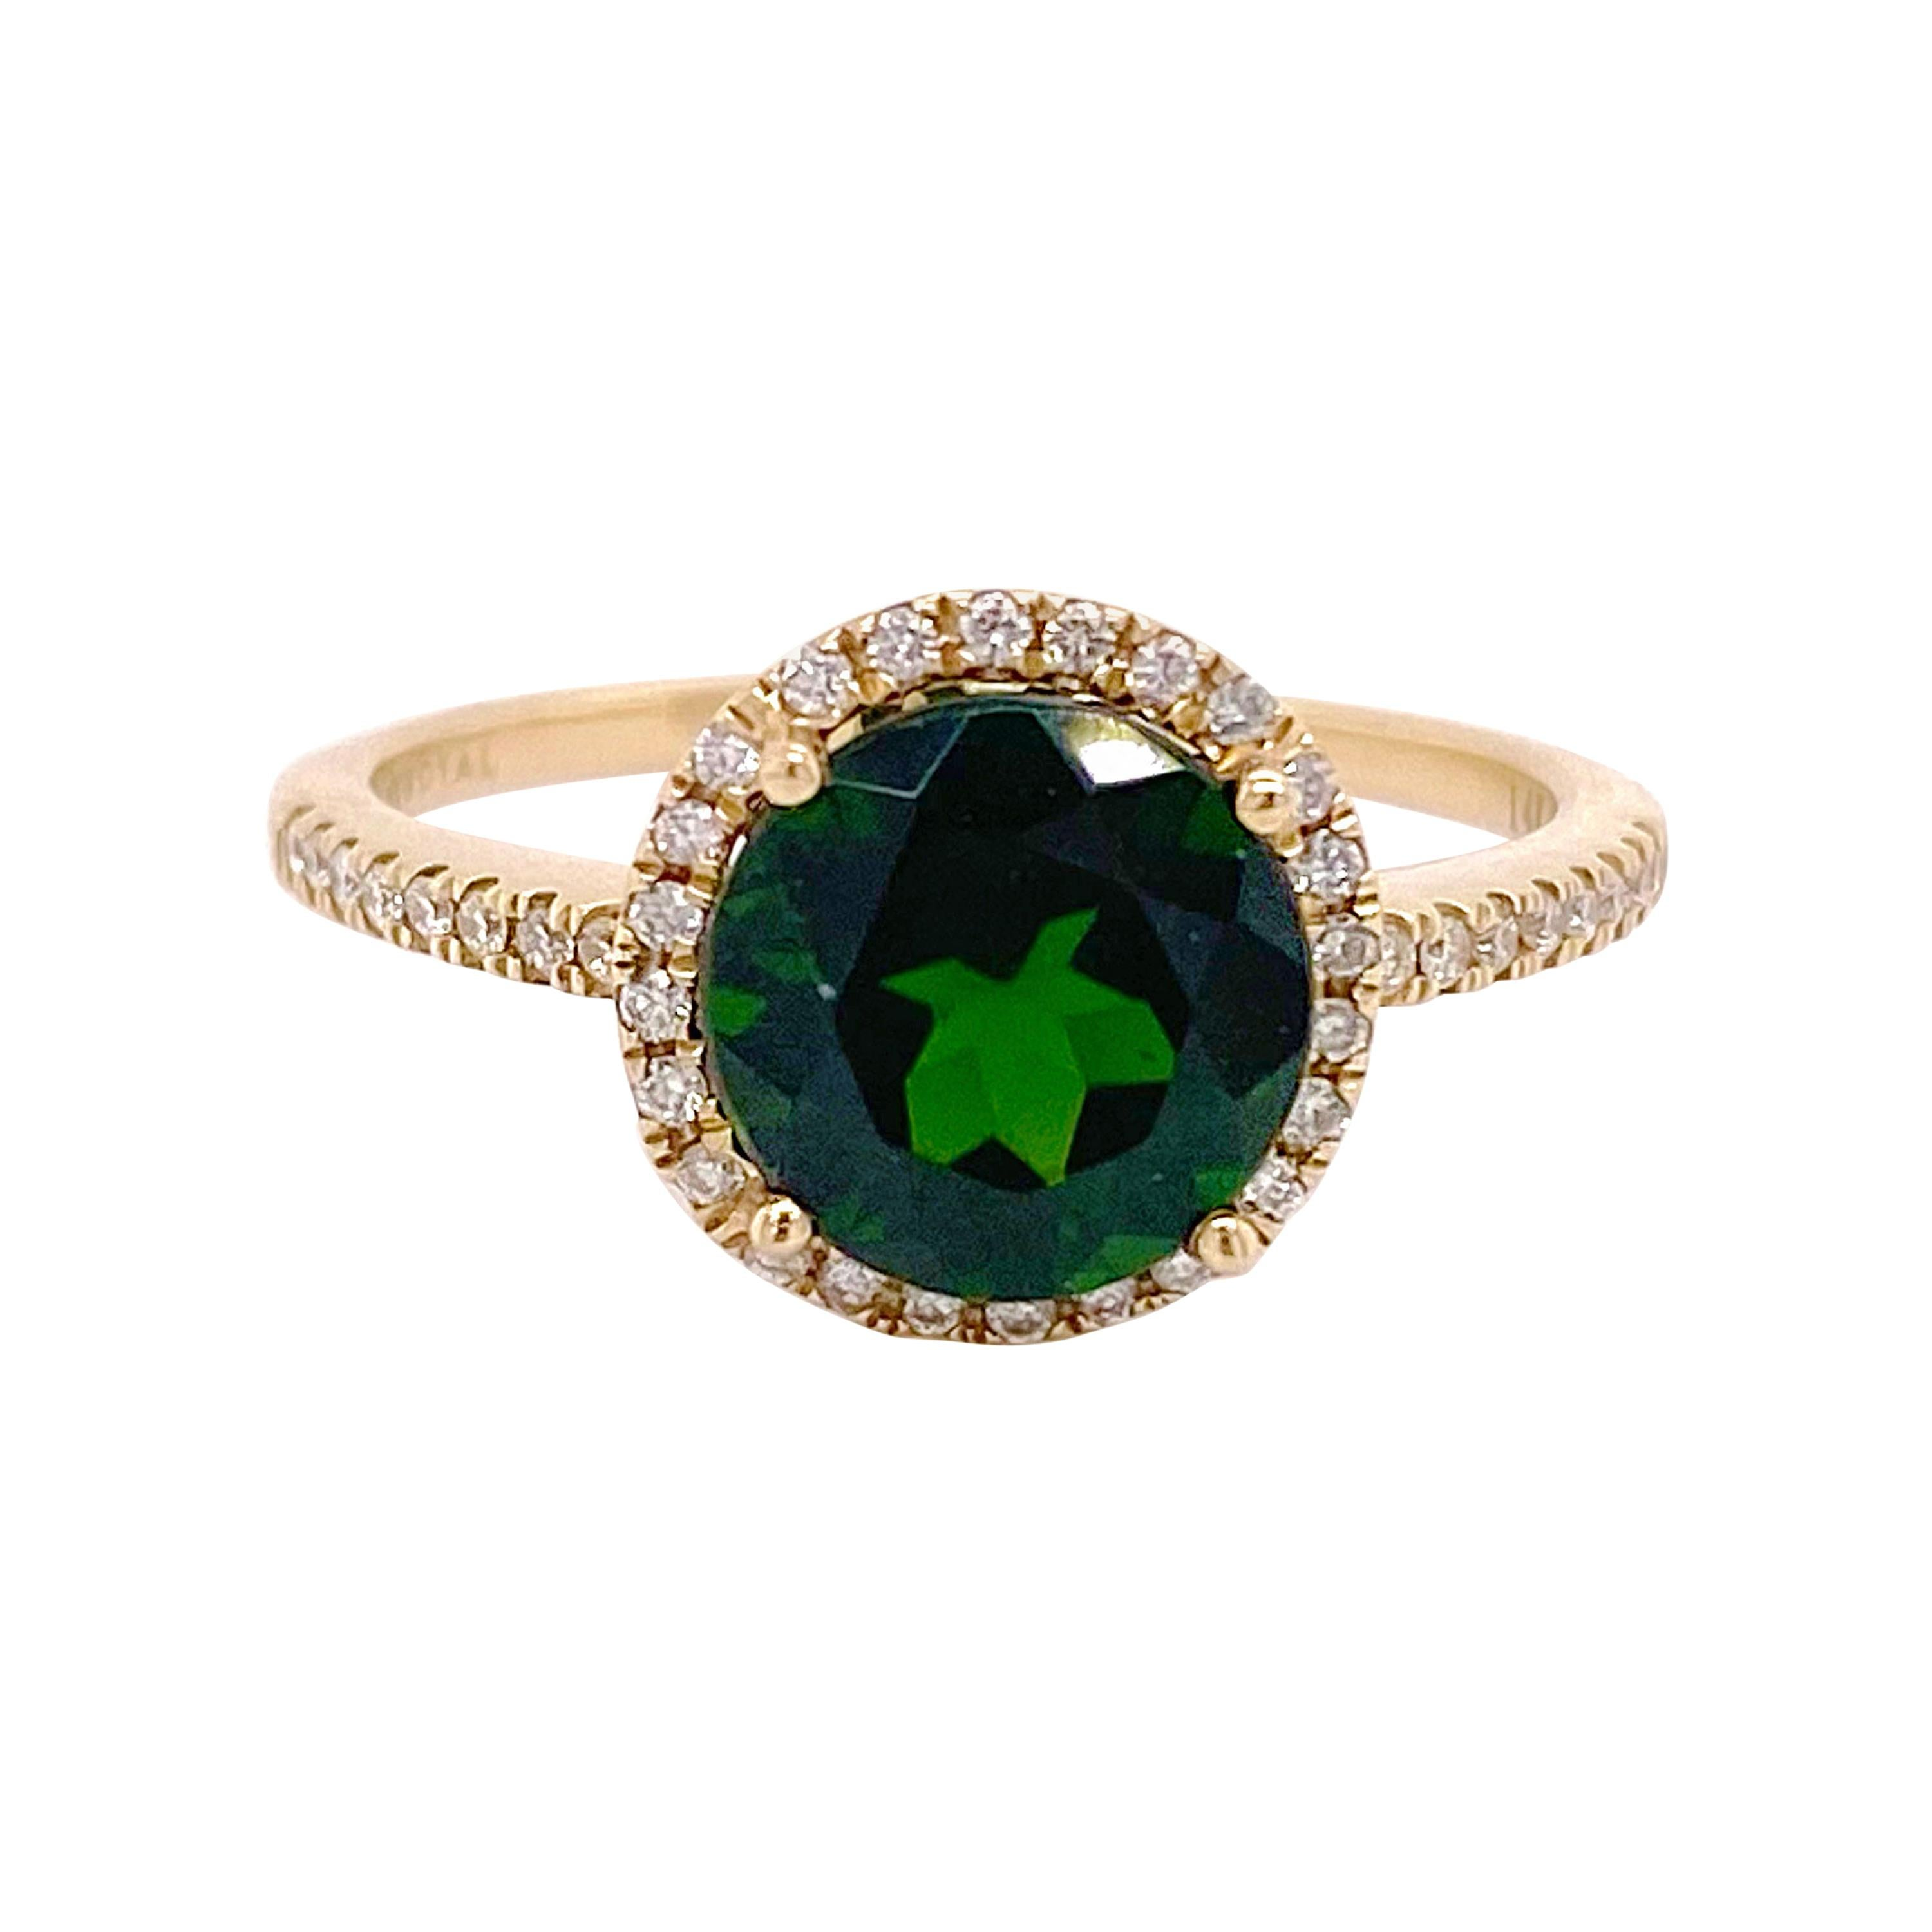 Russalite Diamond Ring, Yellow Gold, Diamond Halo Natural Round Emerald Ring